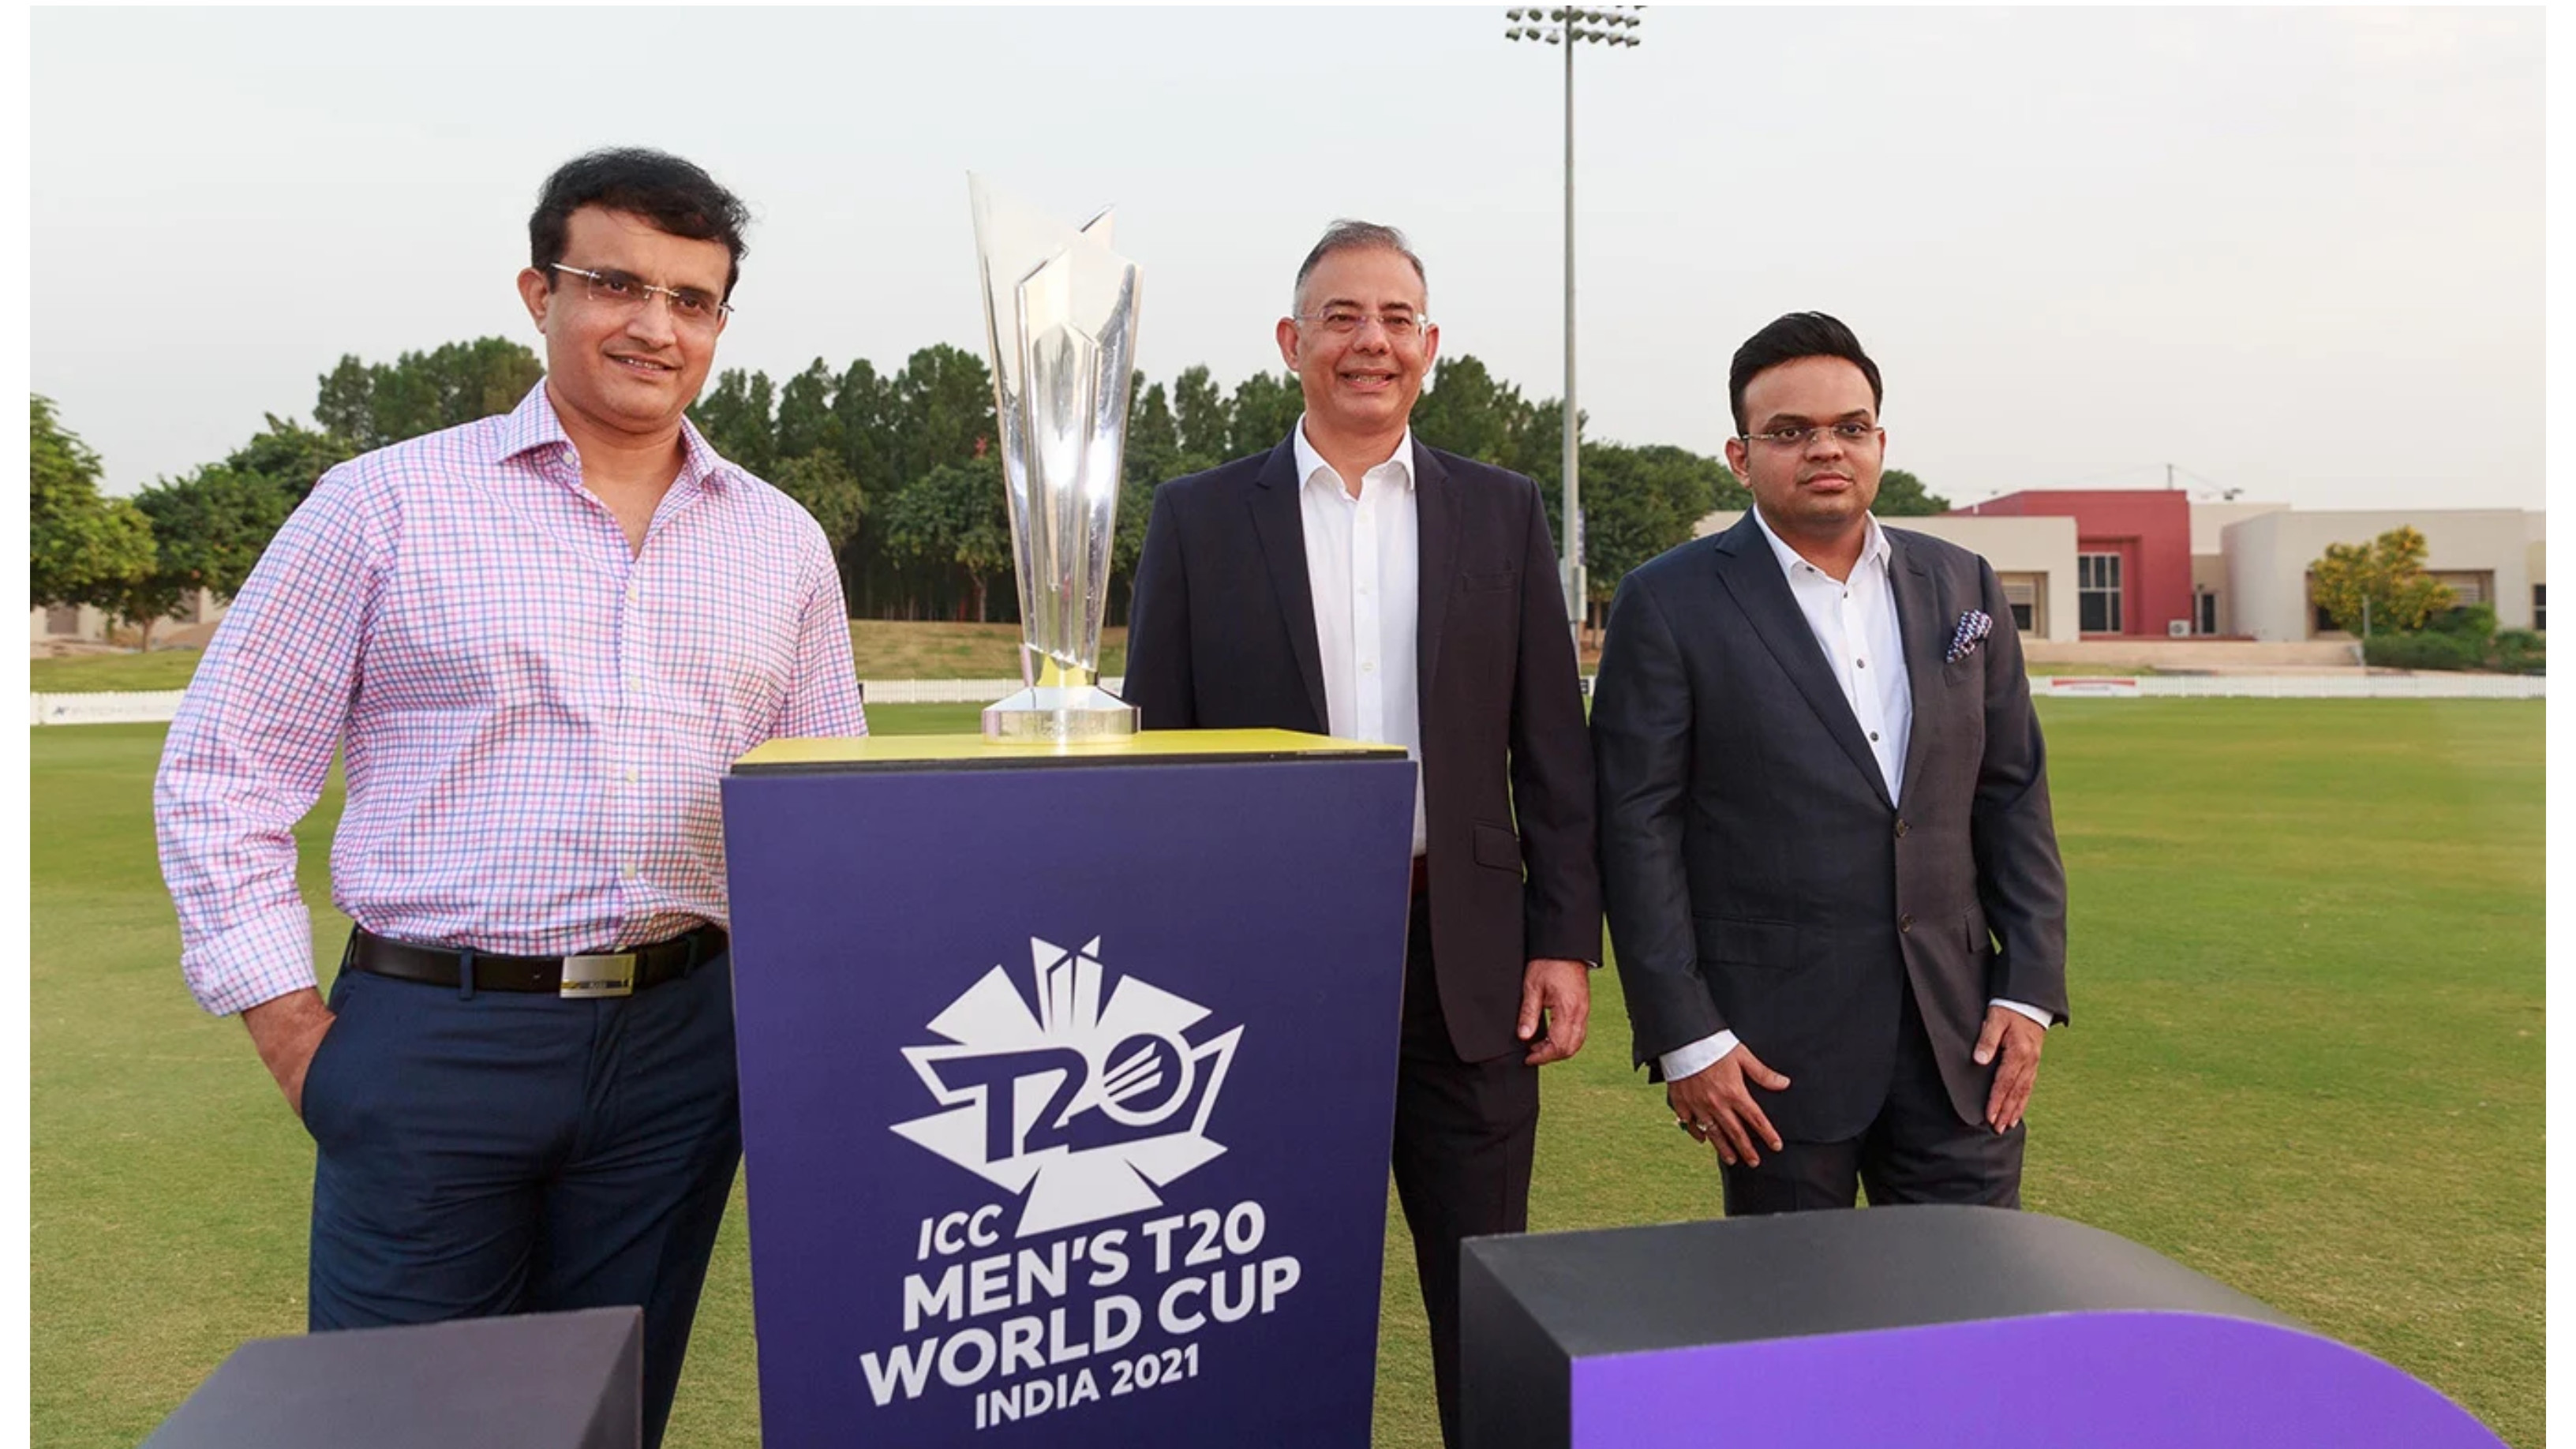 ICC has backup plans ready for T20 World Cup, proceeding as planned now